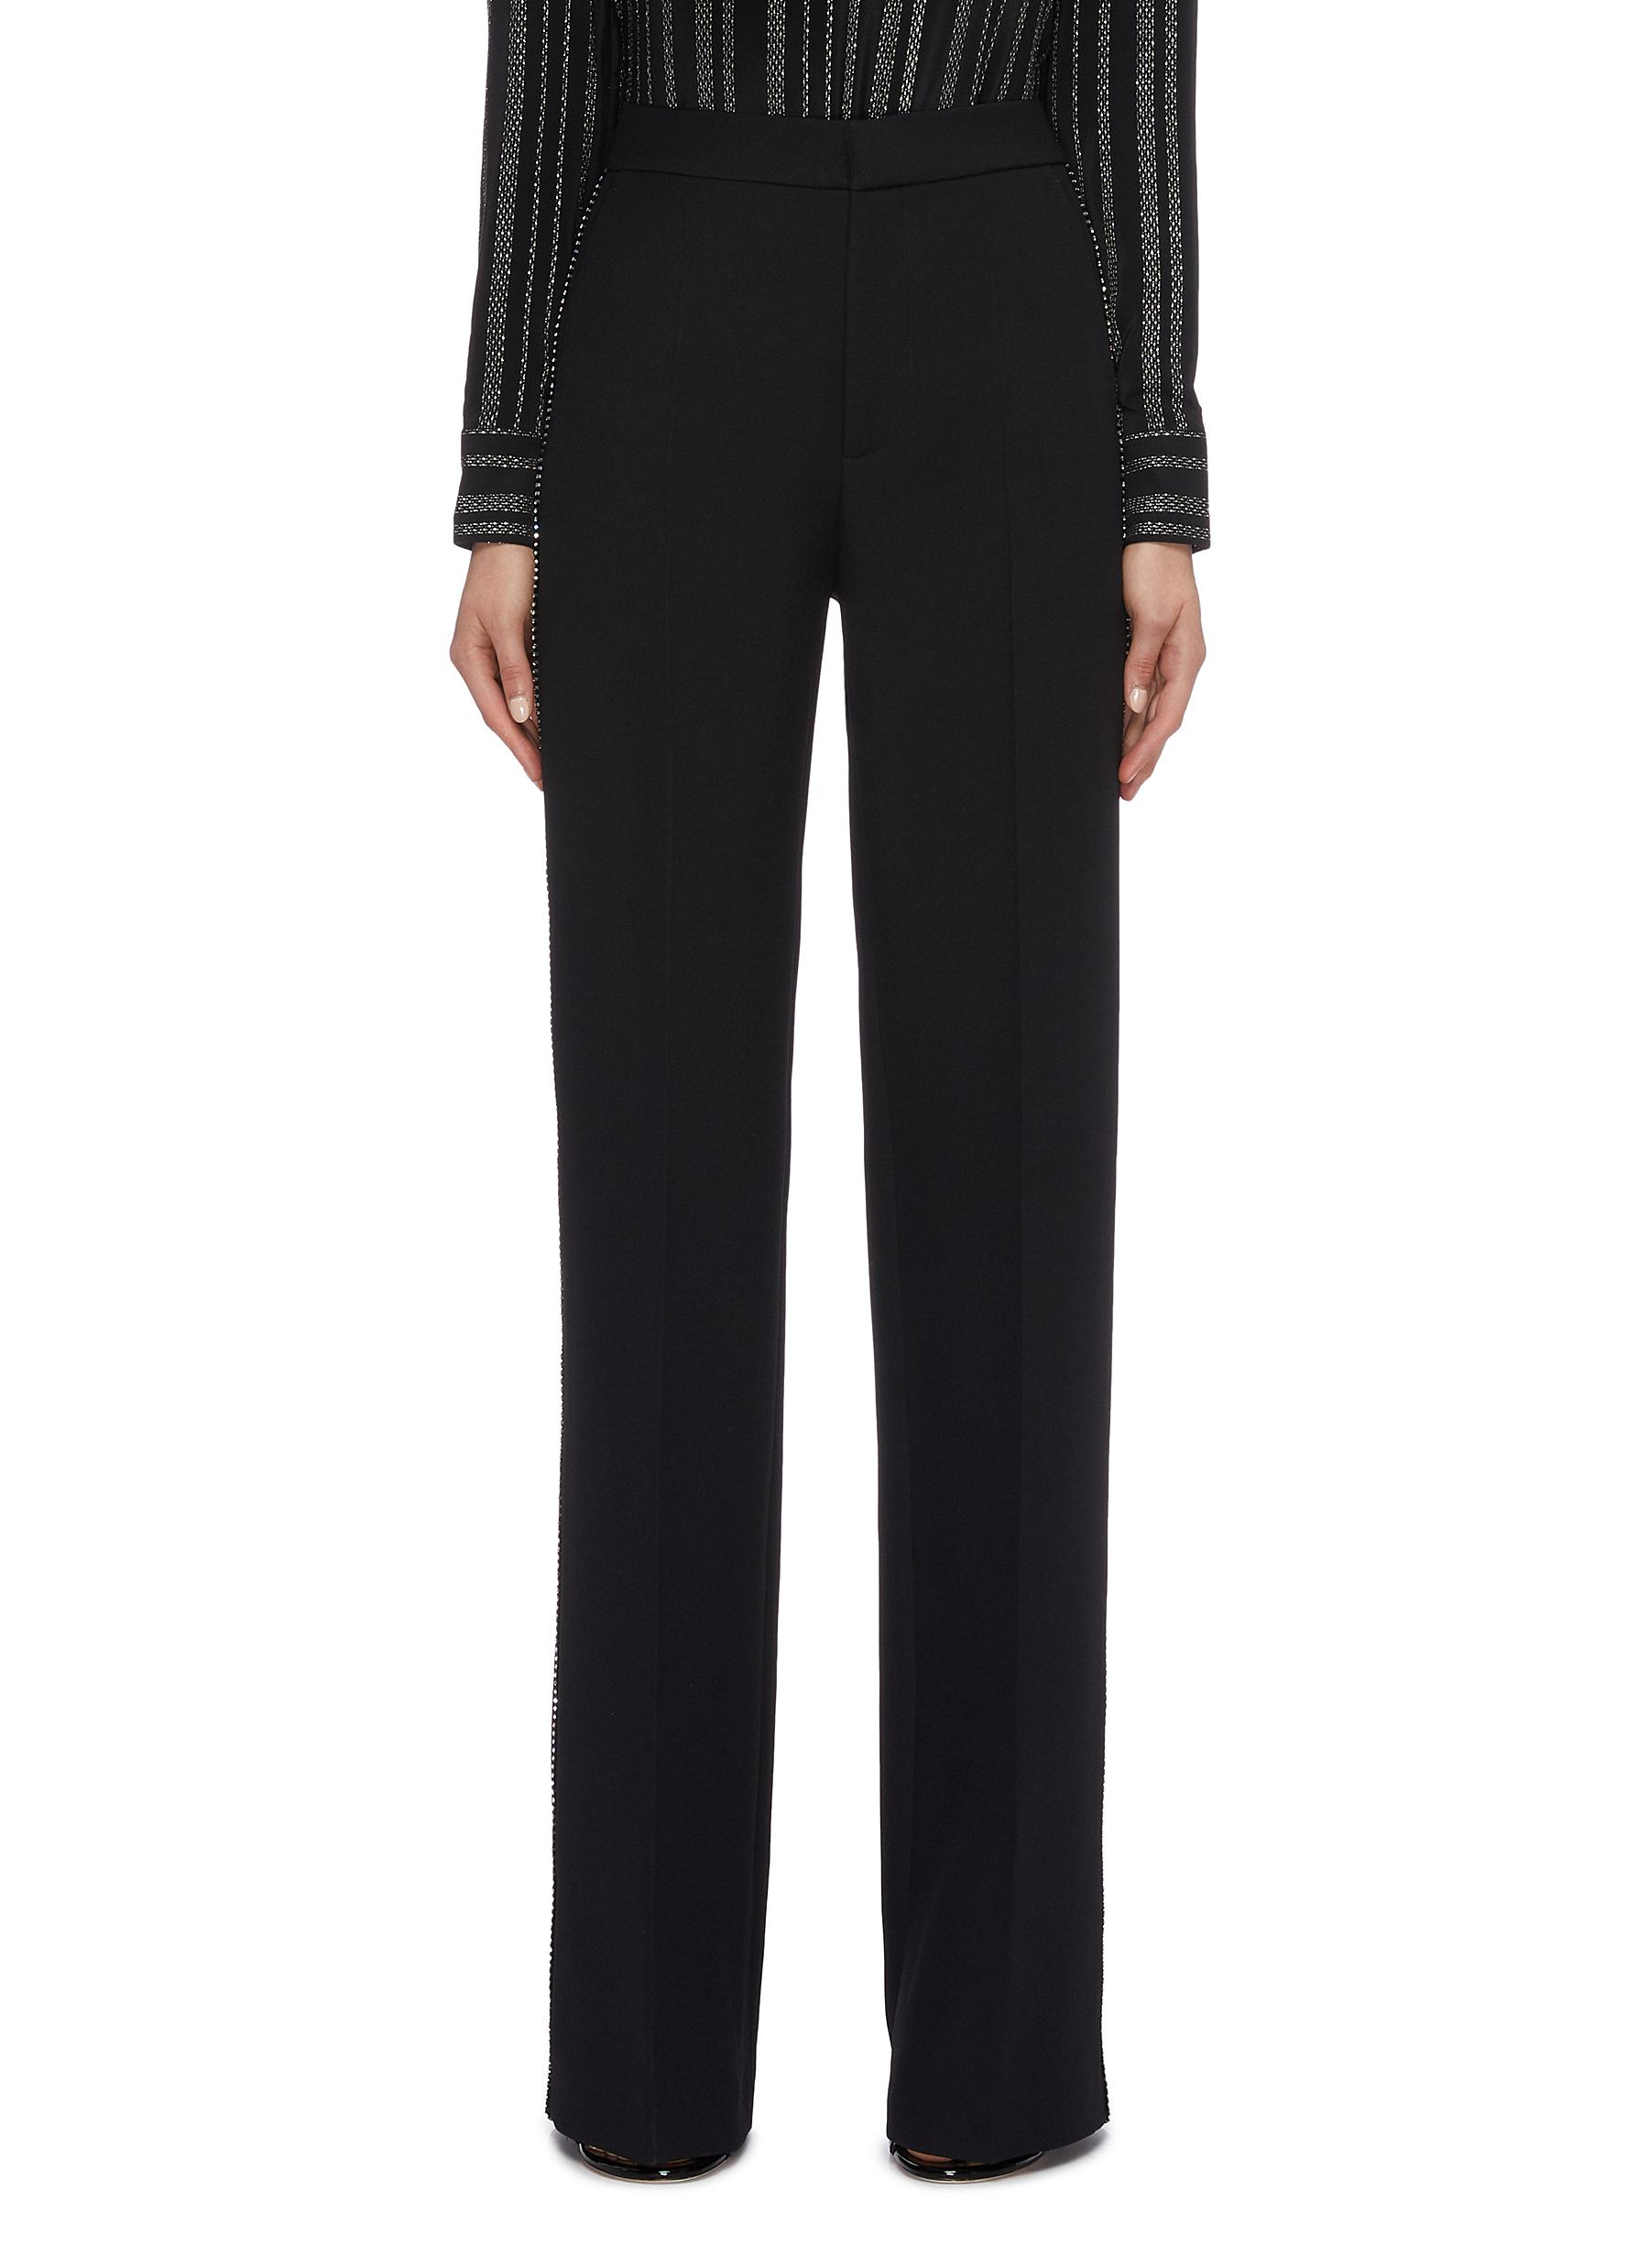 Strass outseam suiting pants by Philosophy Di Lorenzo Serafini